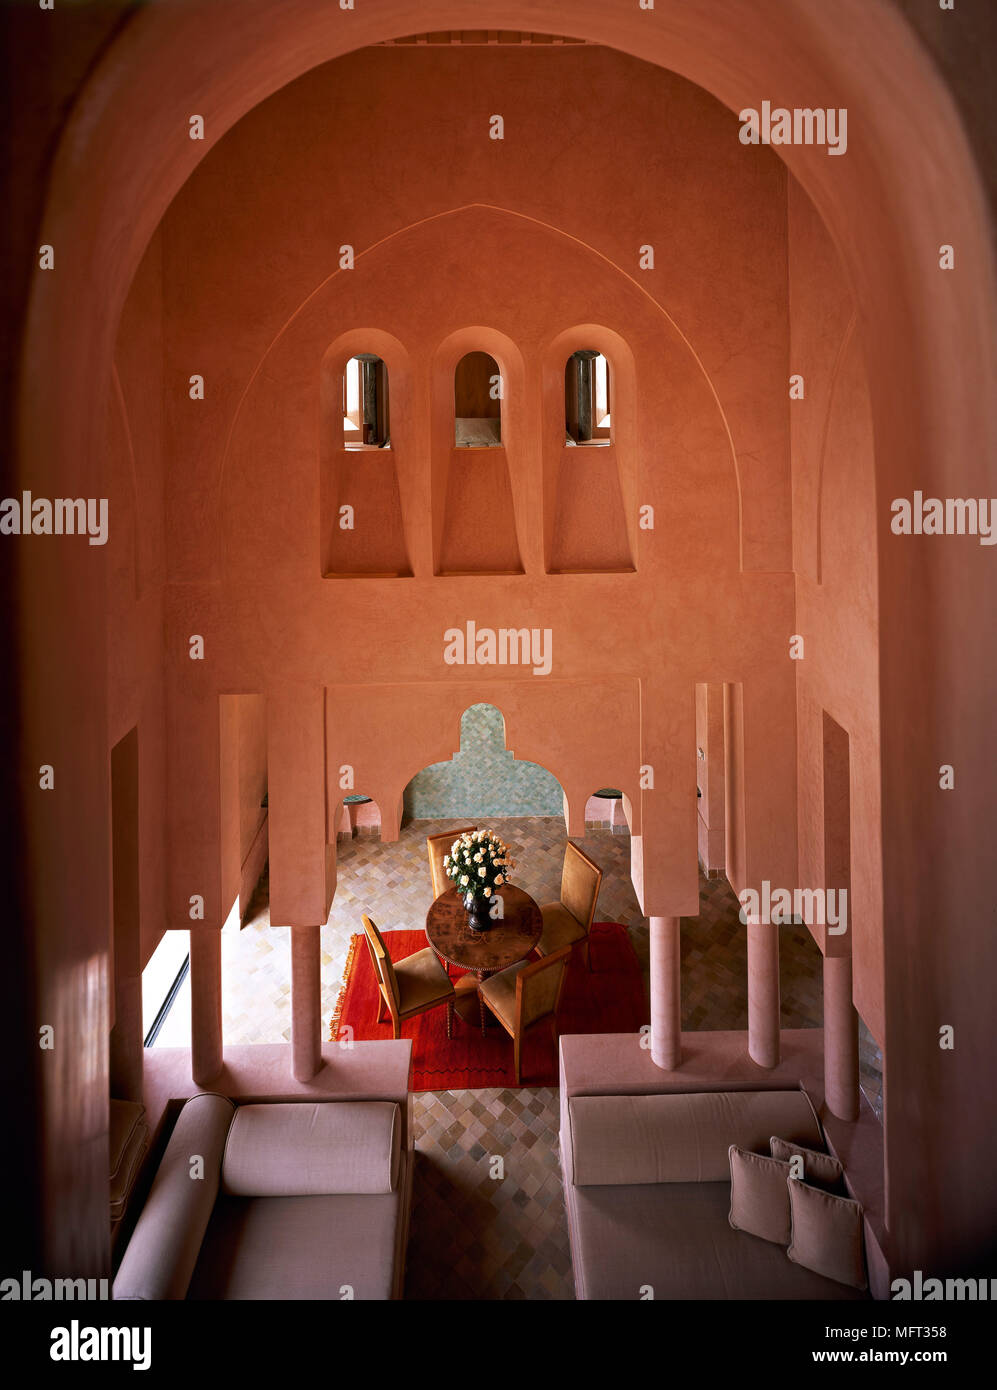 Moroccan terracotta dining room high arched ceiling round table chairs  interiors rooms ethnic influence warm colours arabian moorish archirectural de - Stock Image